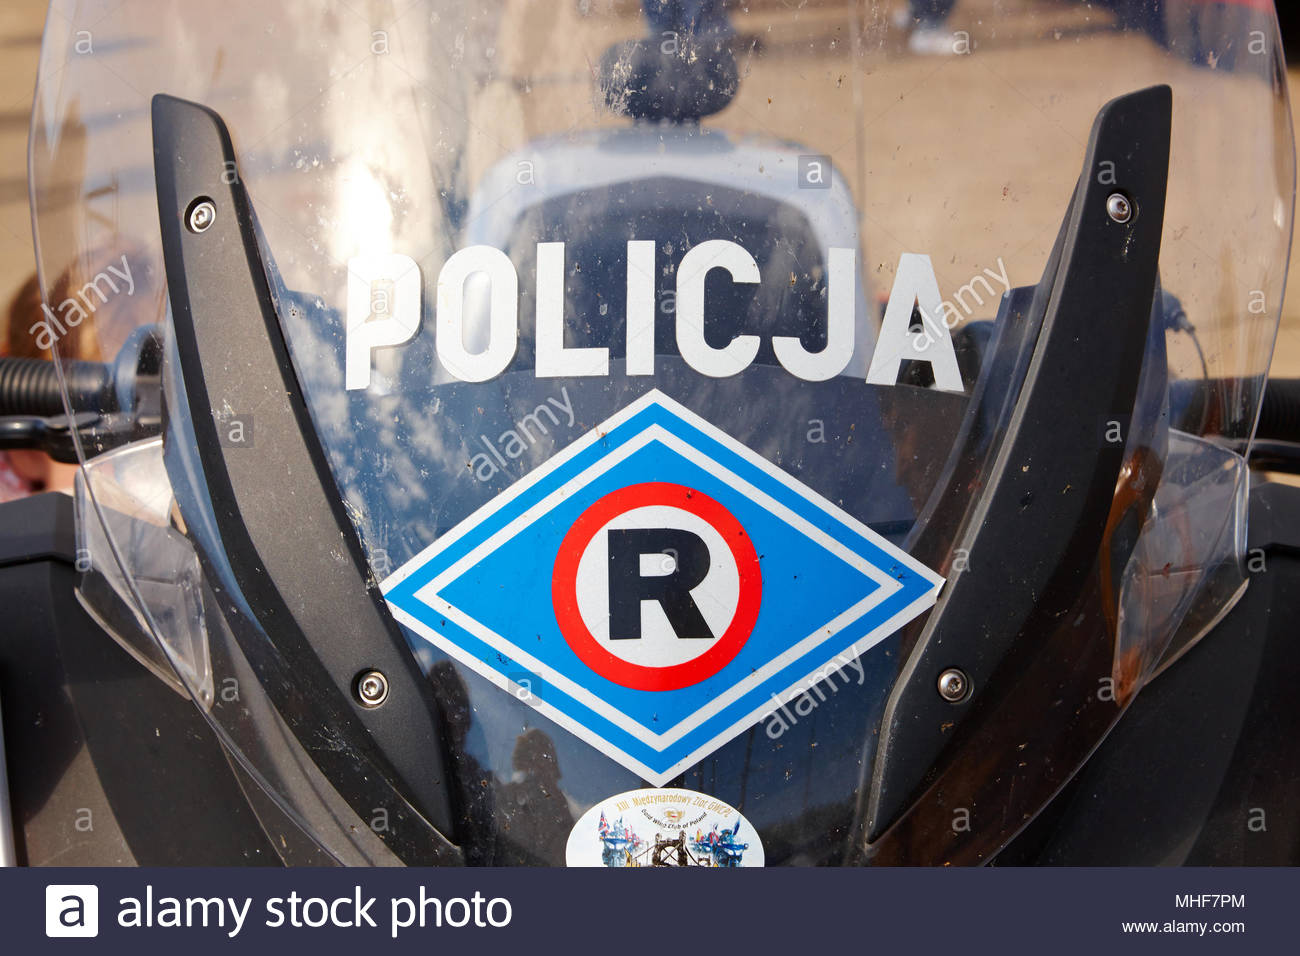 Police vehicles standing in street - Stock Image